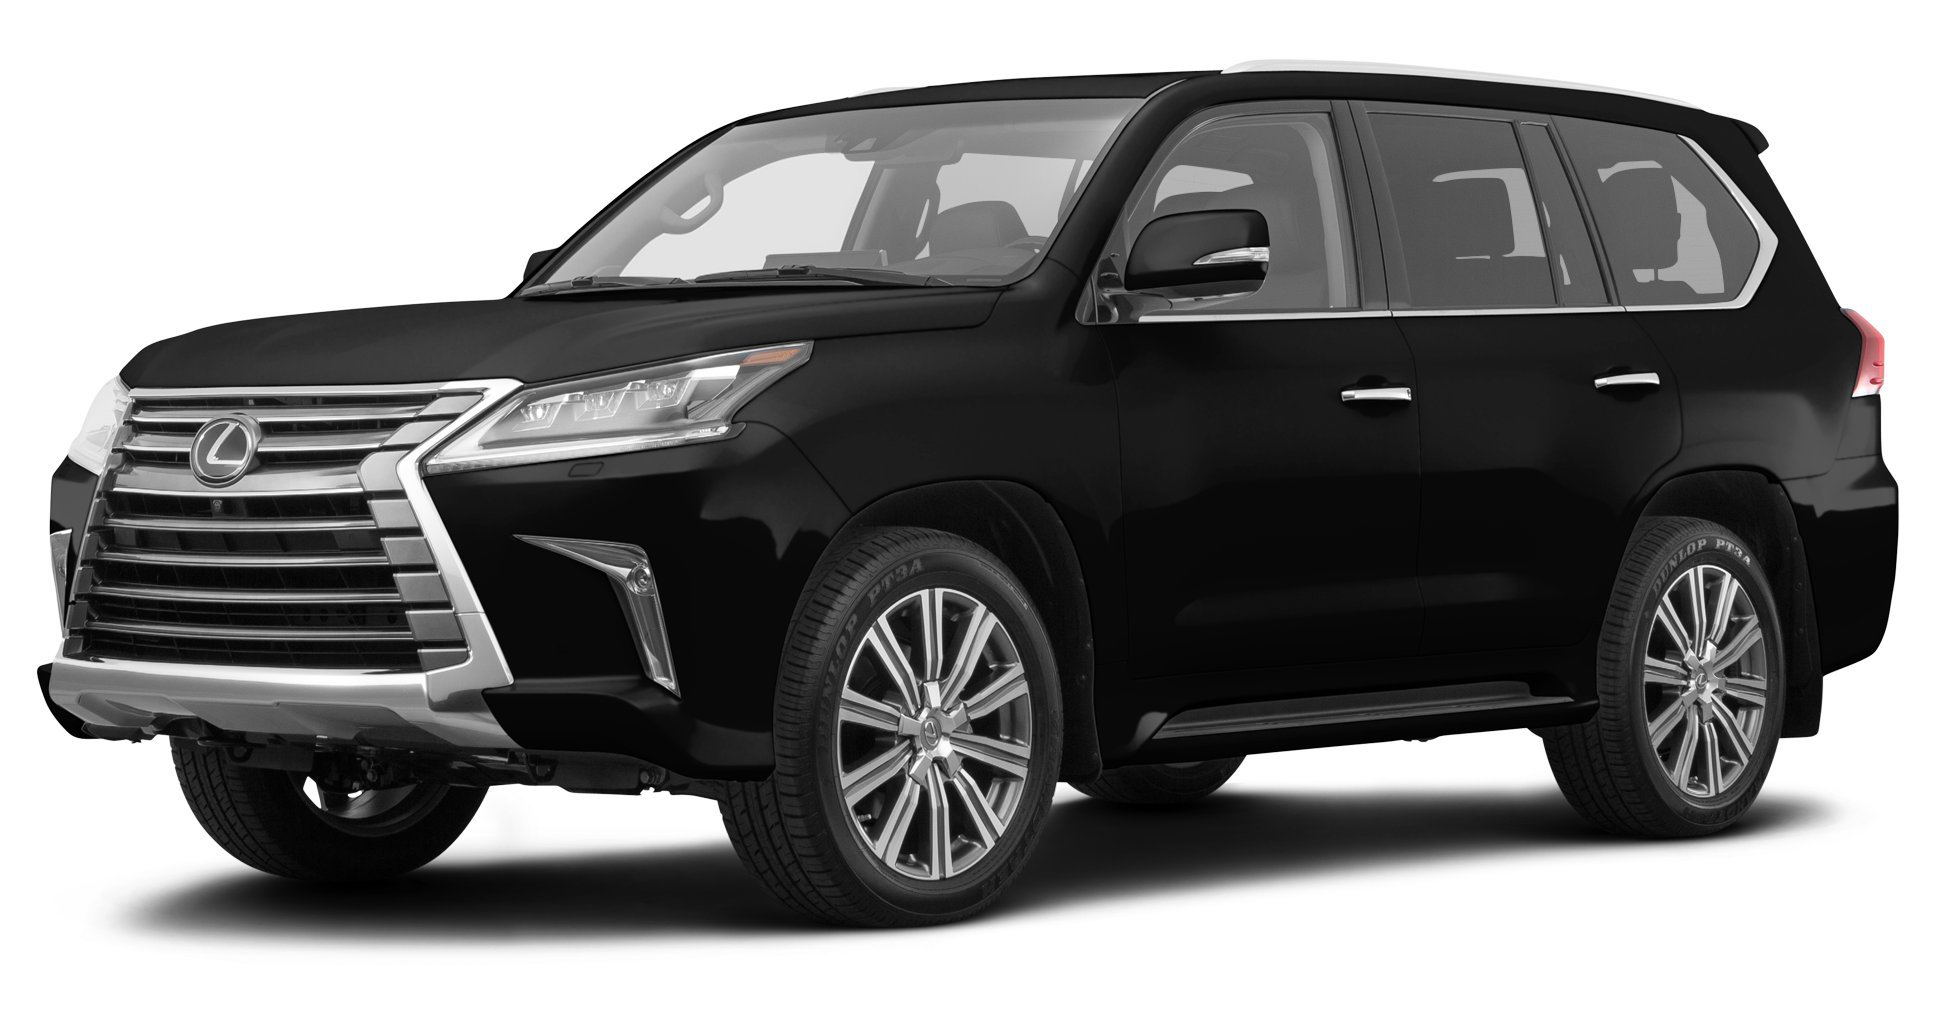 2017 toyota land cruiser reviews images and specs vehicles. Black Bedroom Furniture Sets. Home Design Ideas